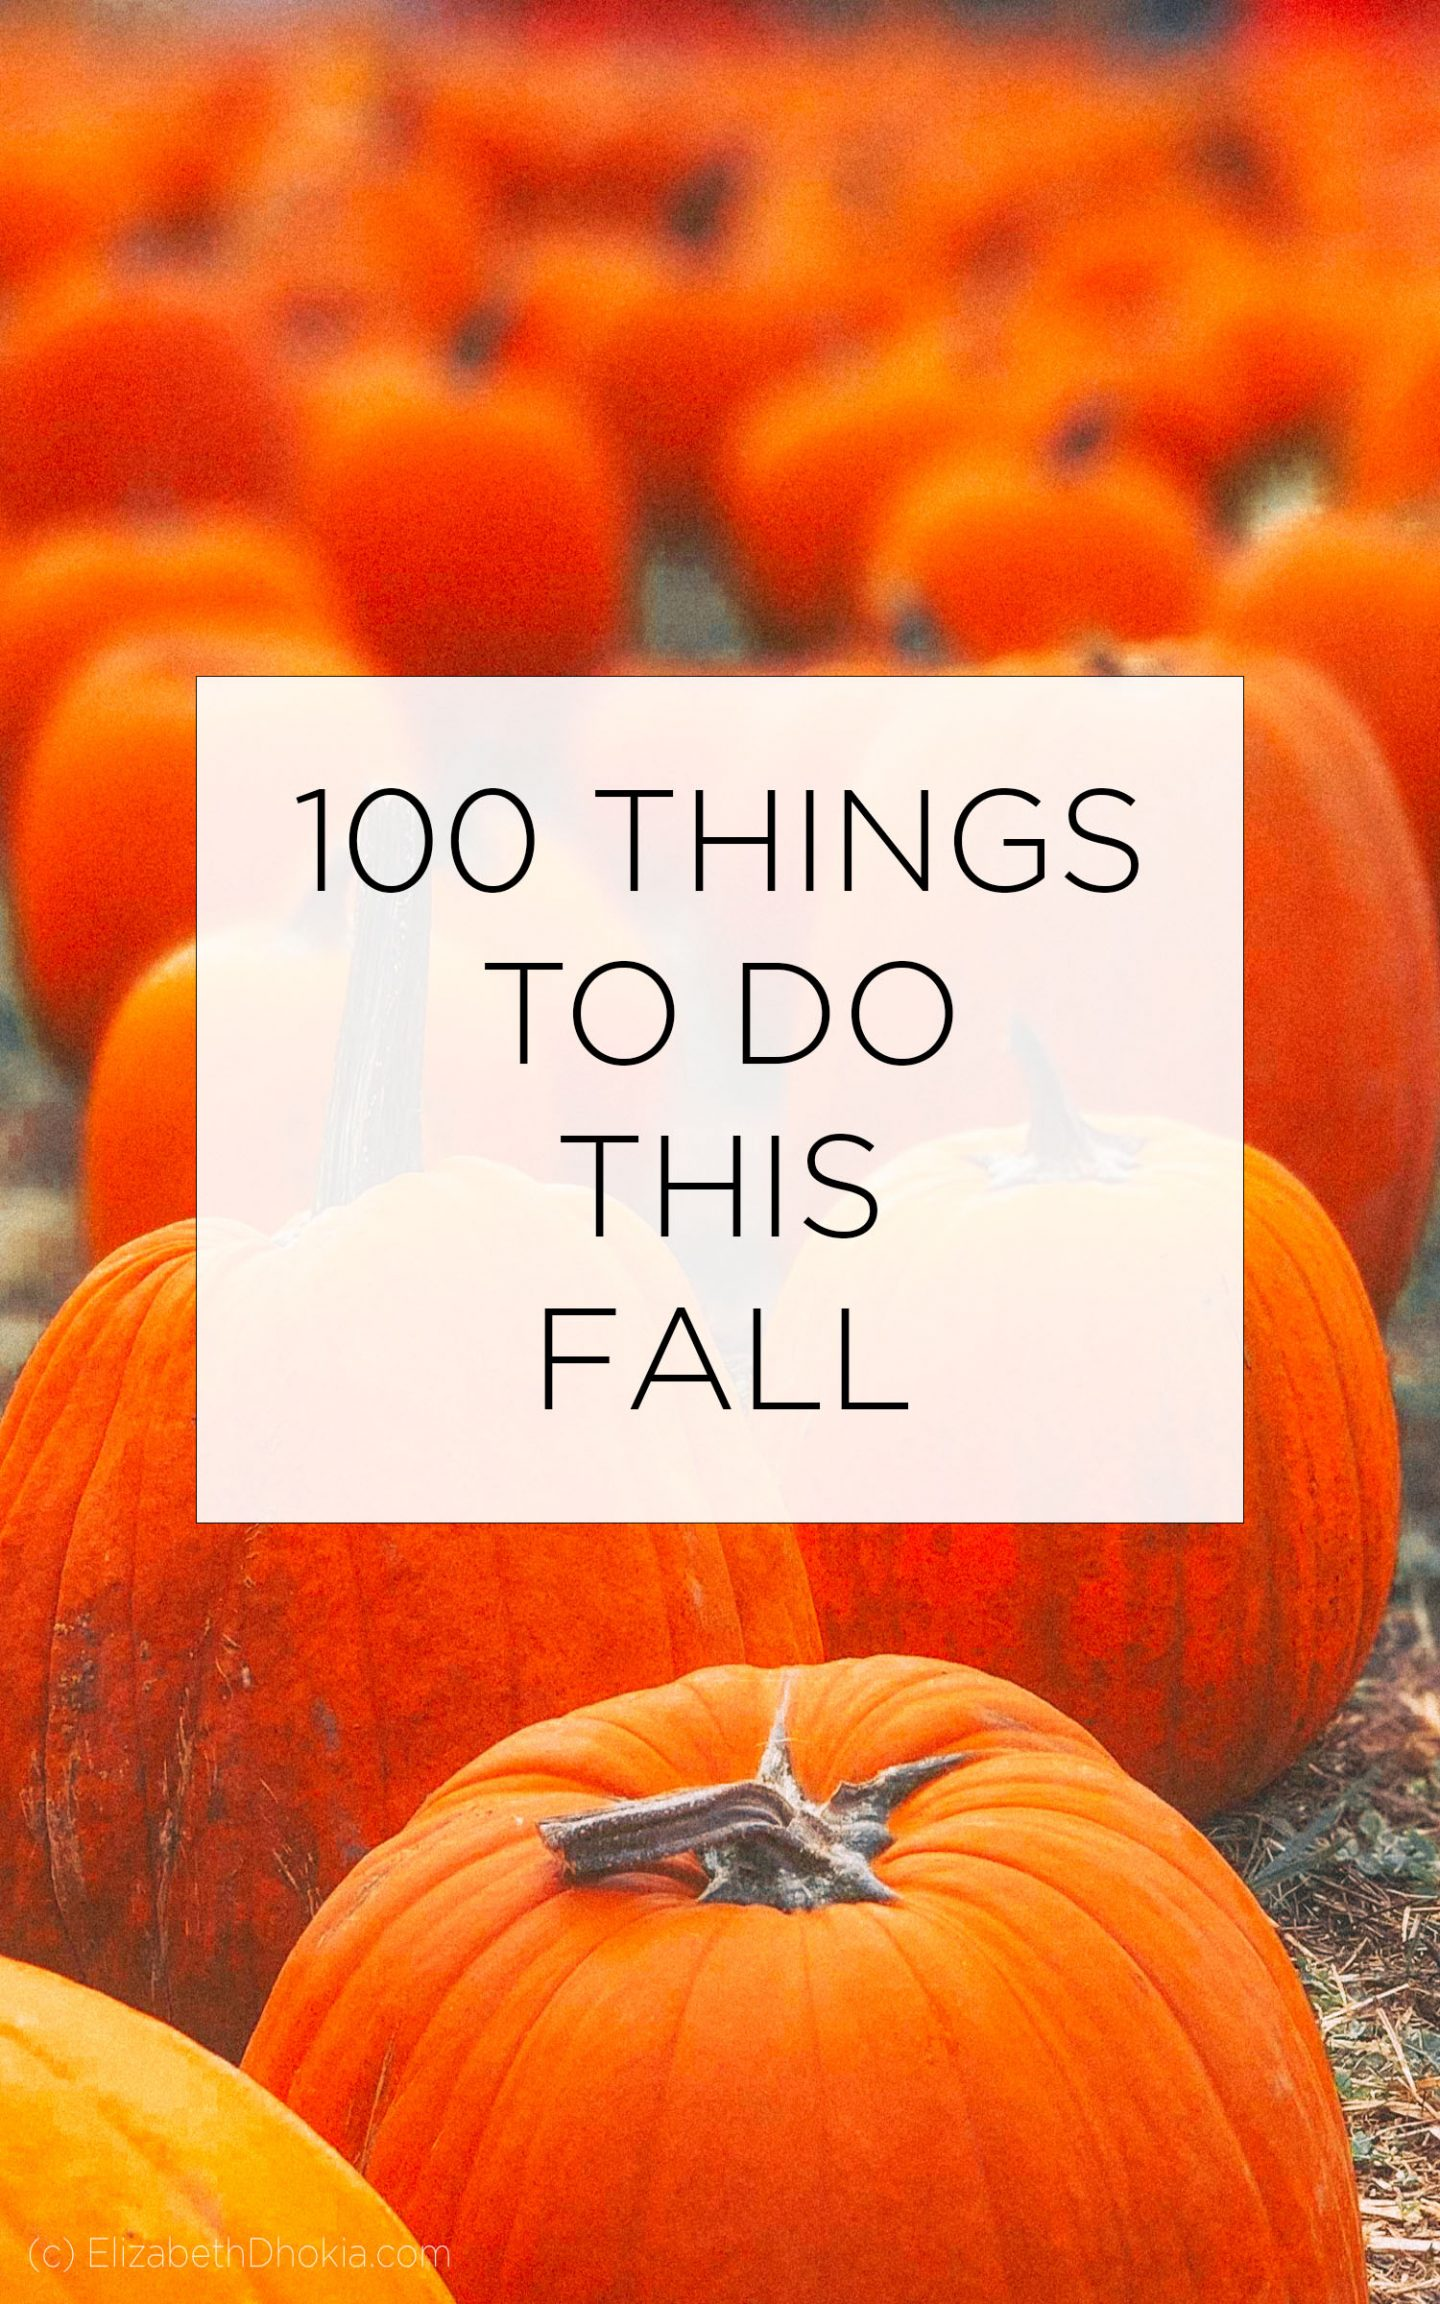 100 Things To Do This Fall List